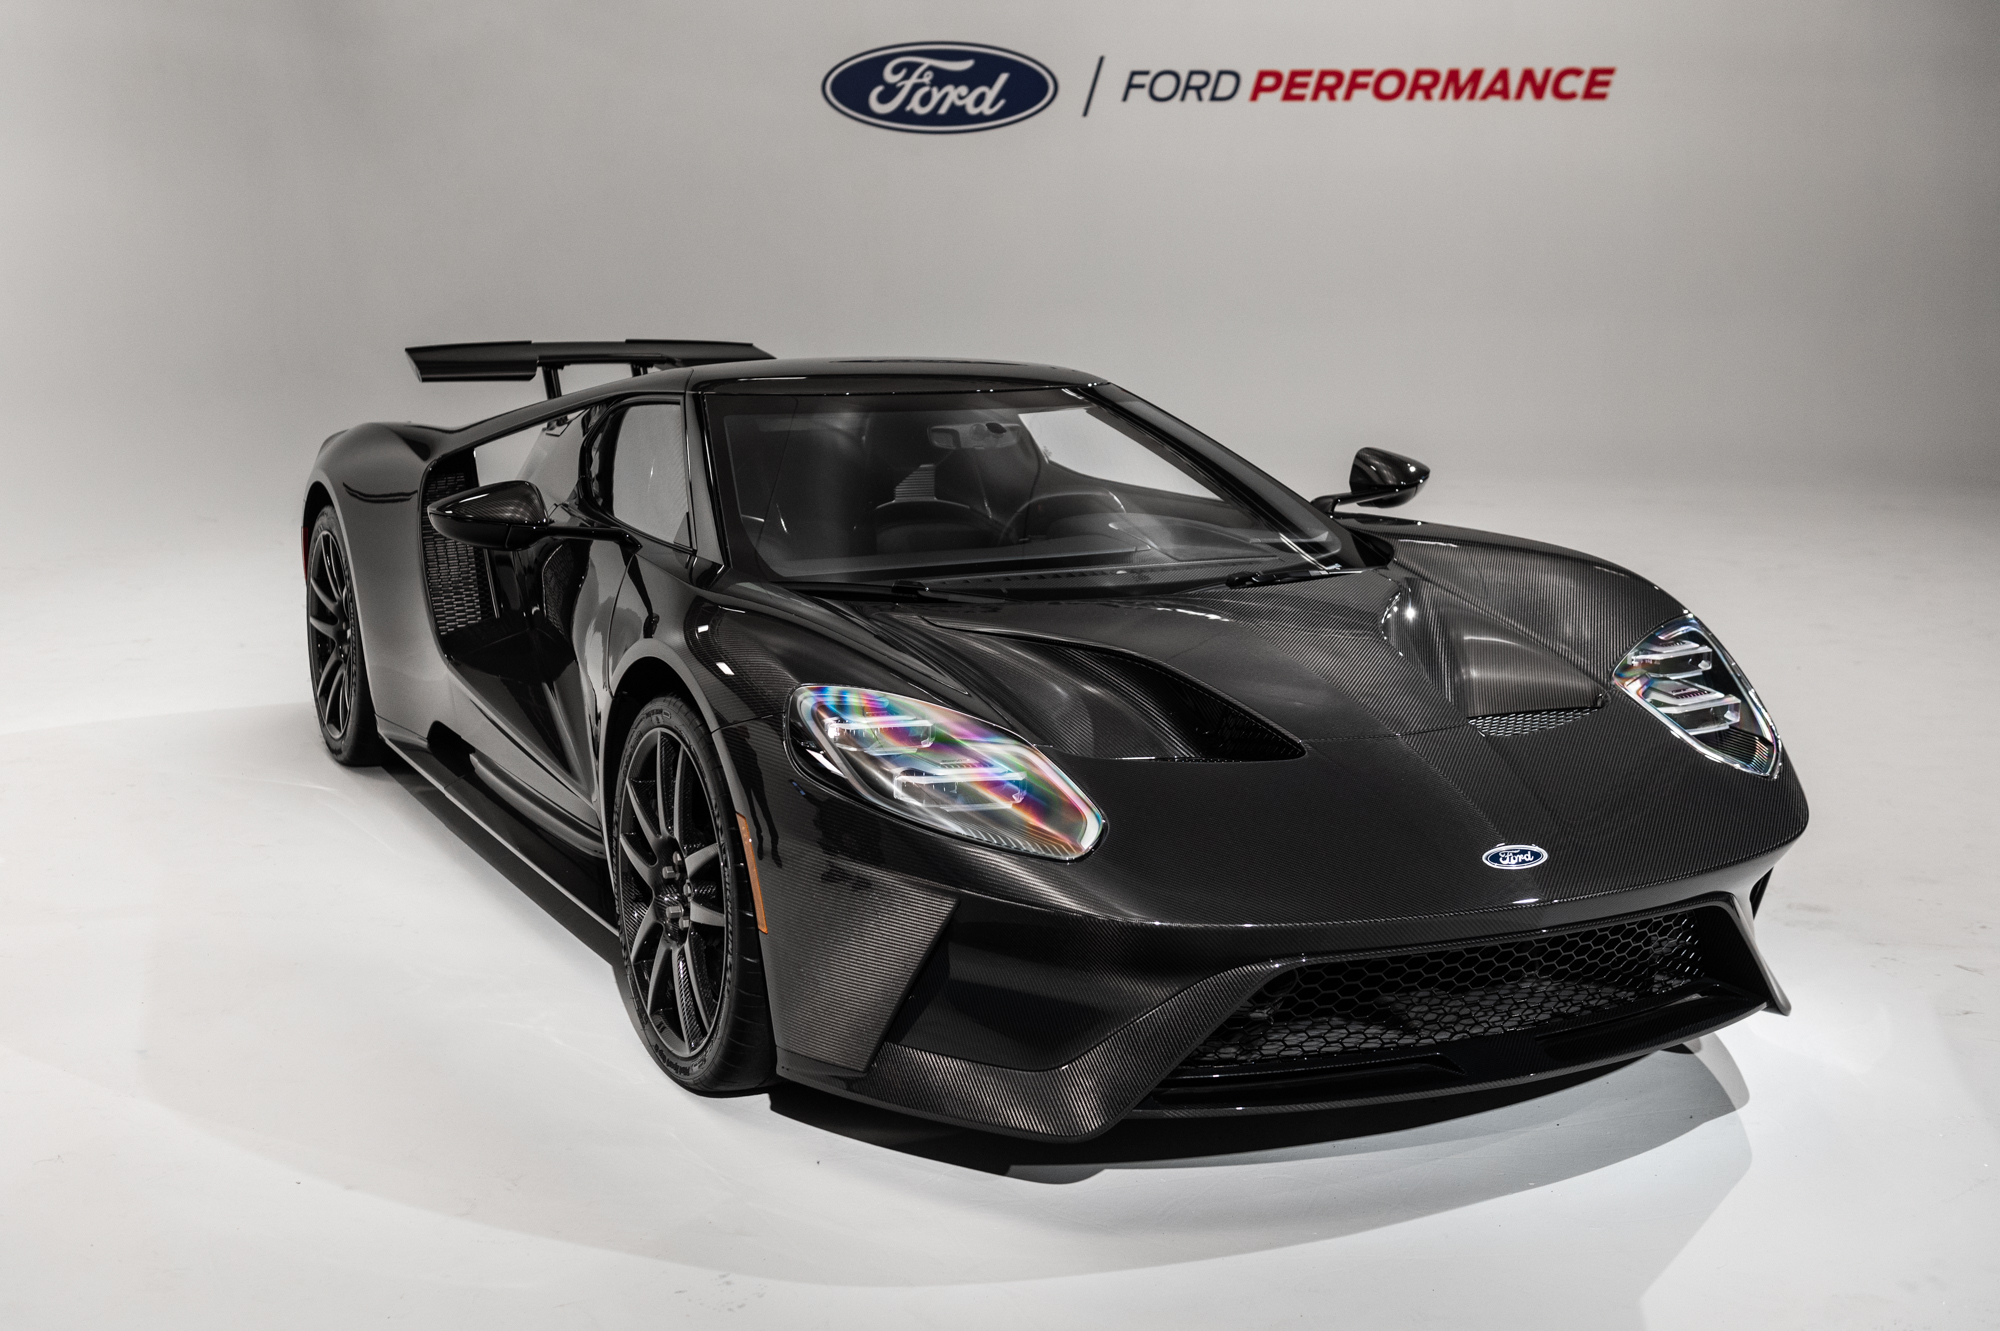 2020 Ford GT Liquid Carbon Edition: Live Photo Gallery